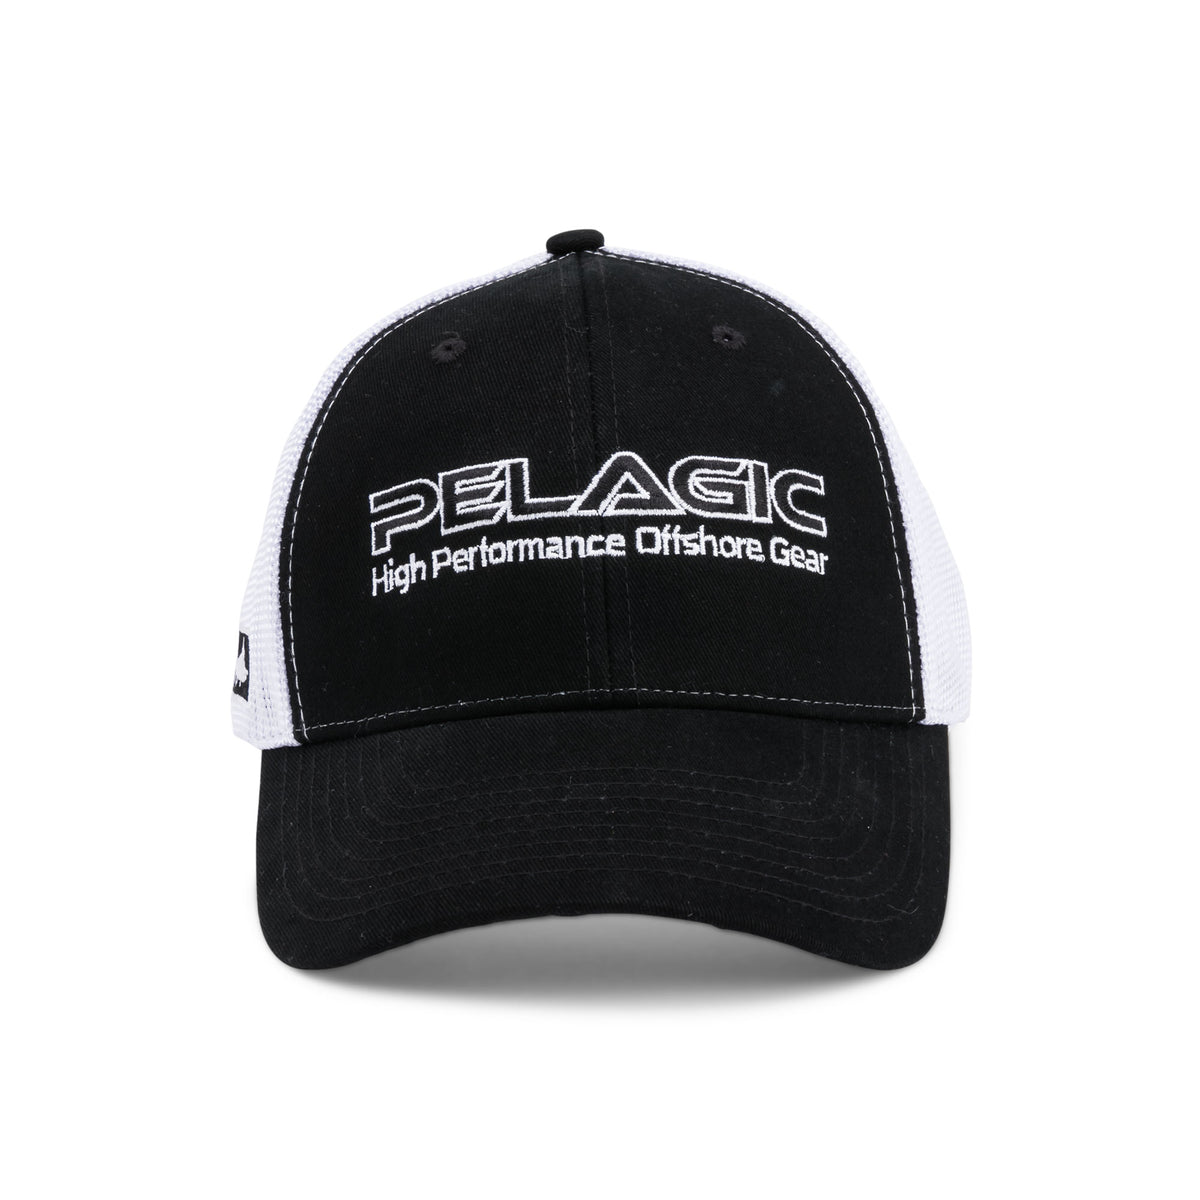 Offshore Fishing Hat Big Image - 3